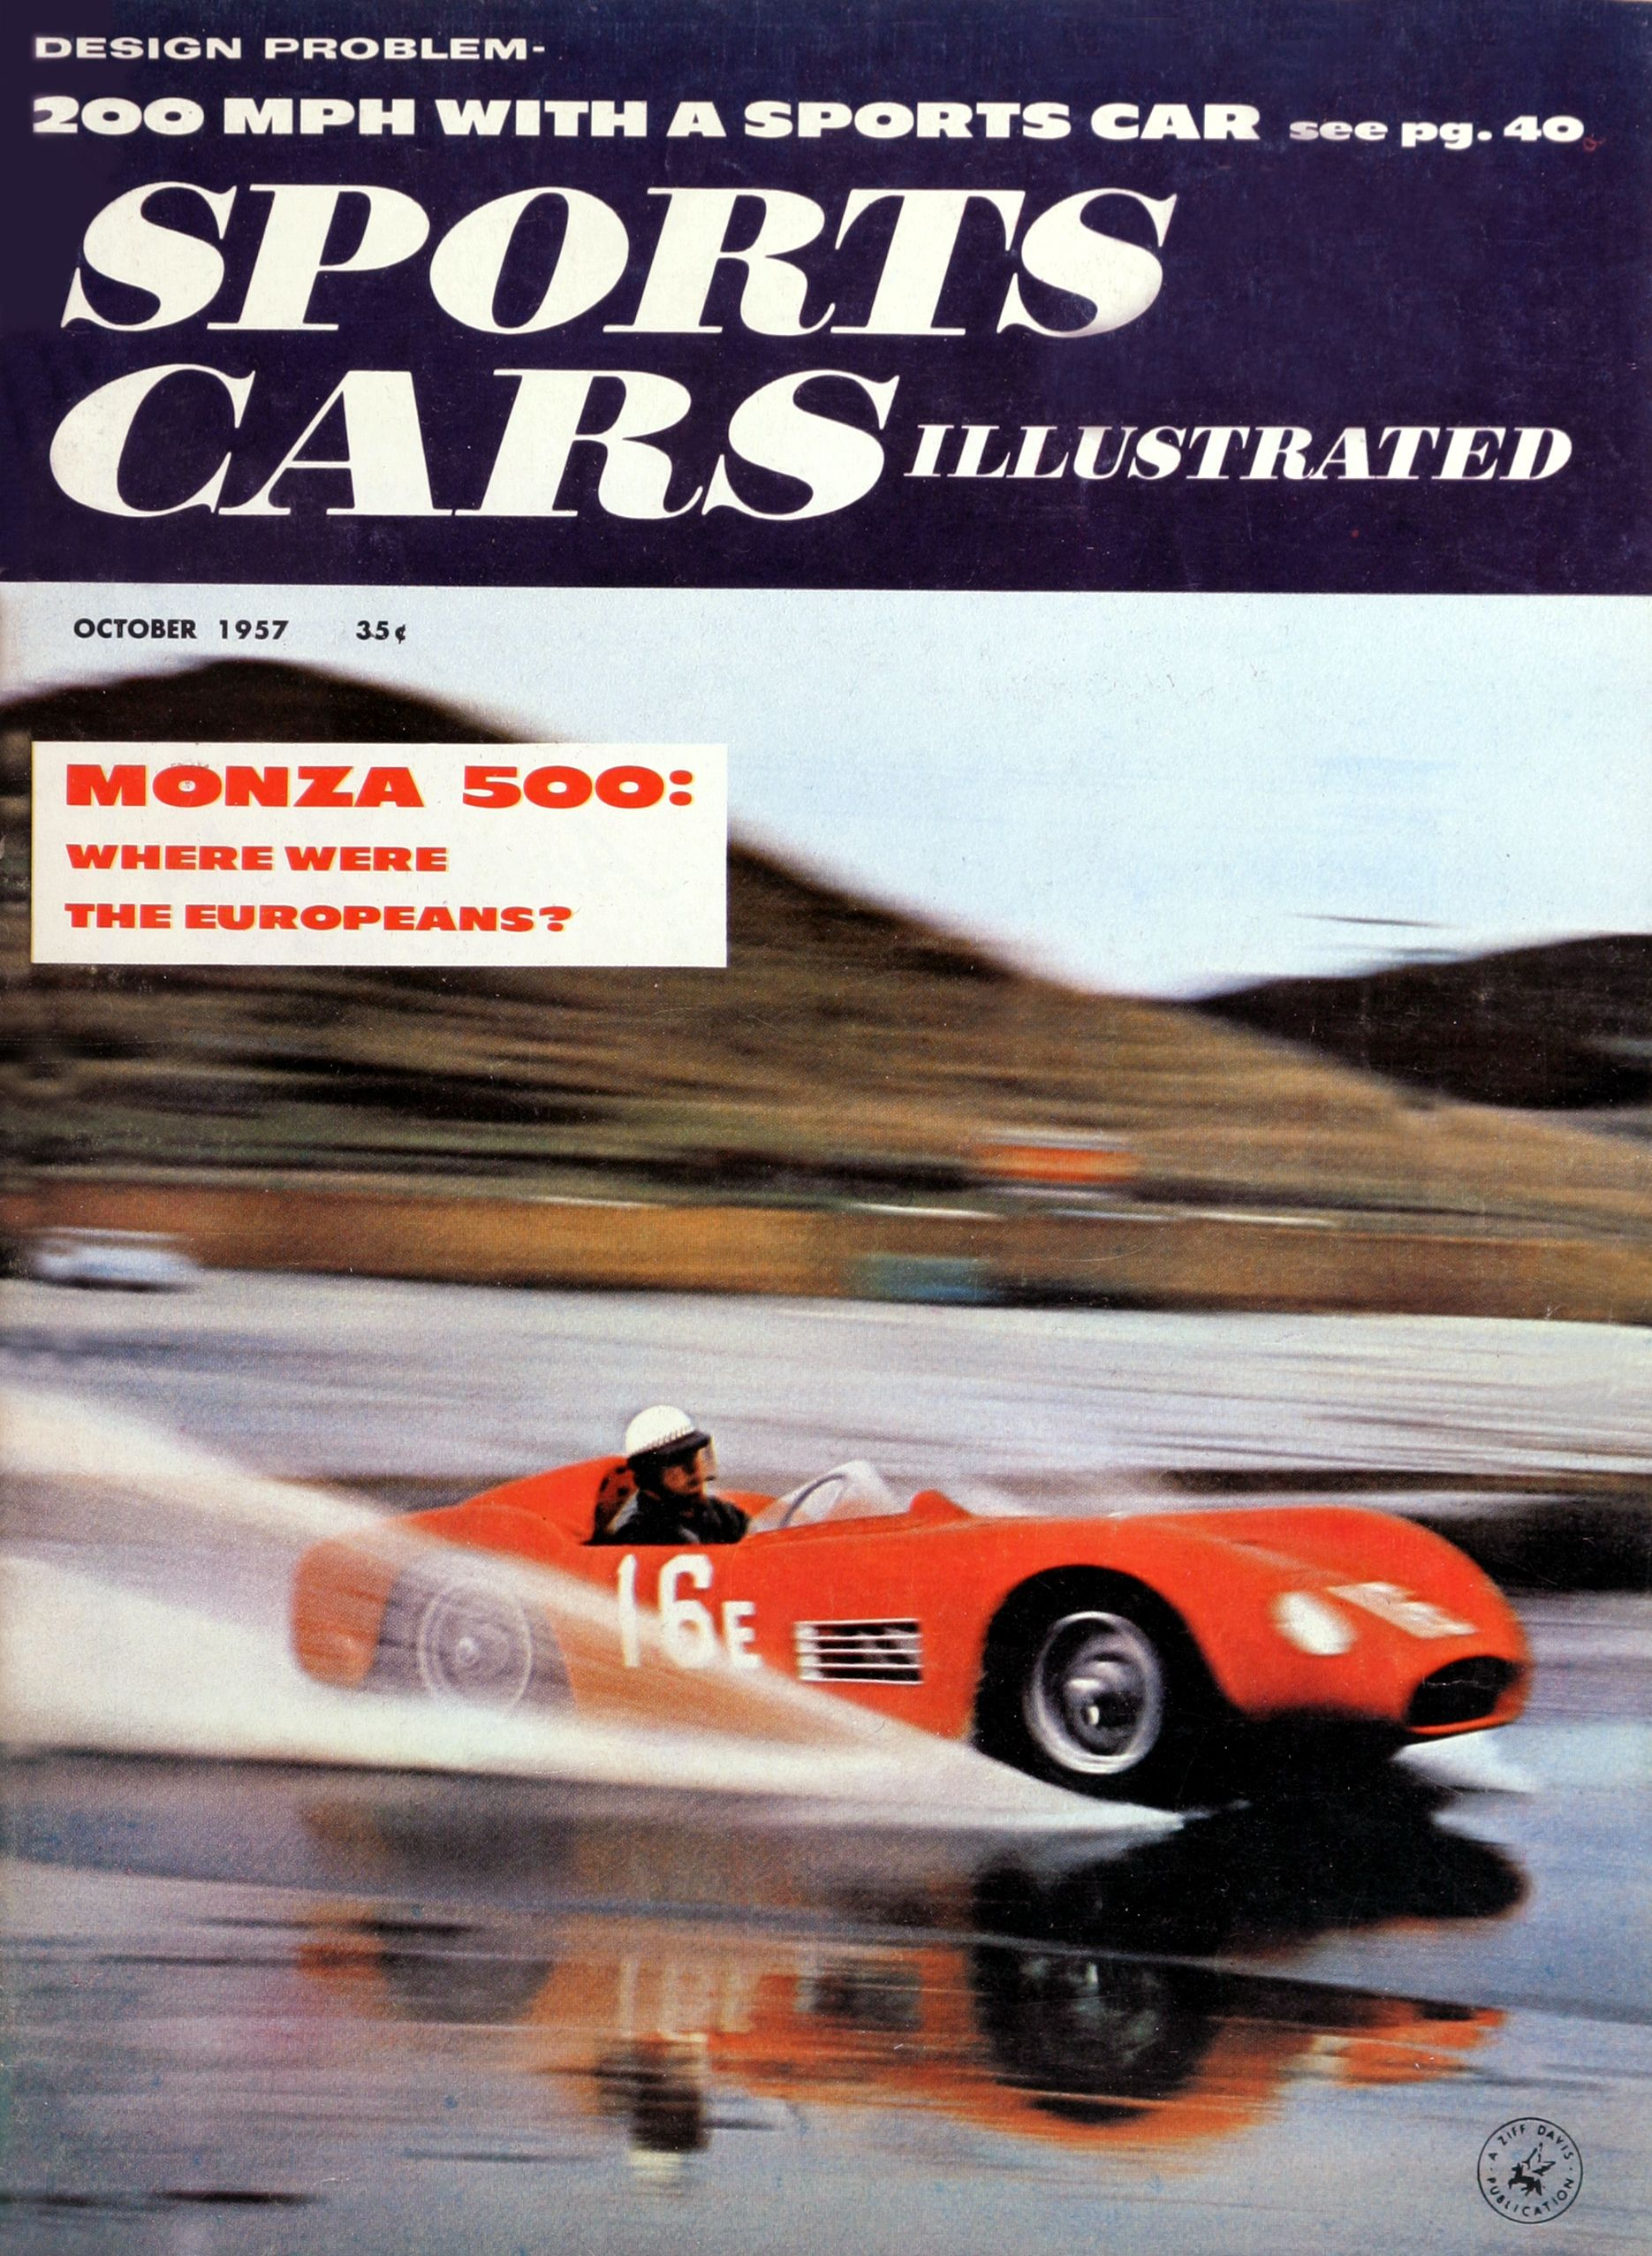 When We Were Young: The Car And Driver/Sports Cars Illustrated Covers Of The